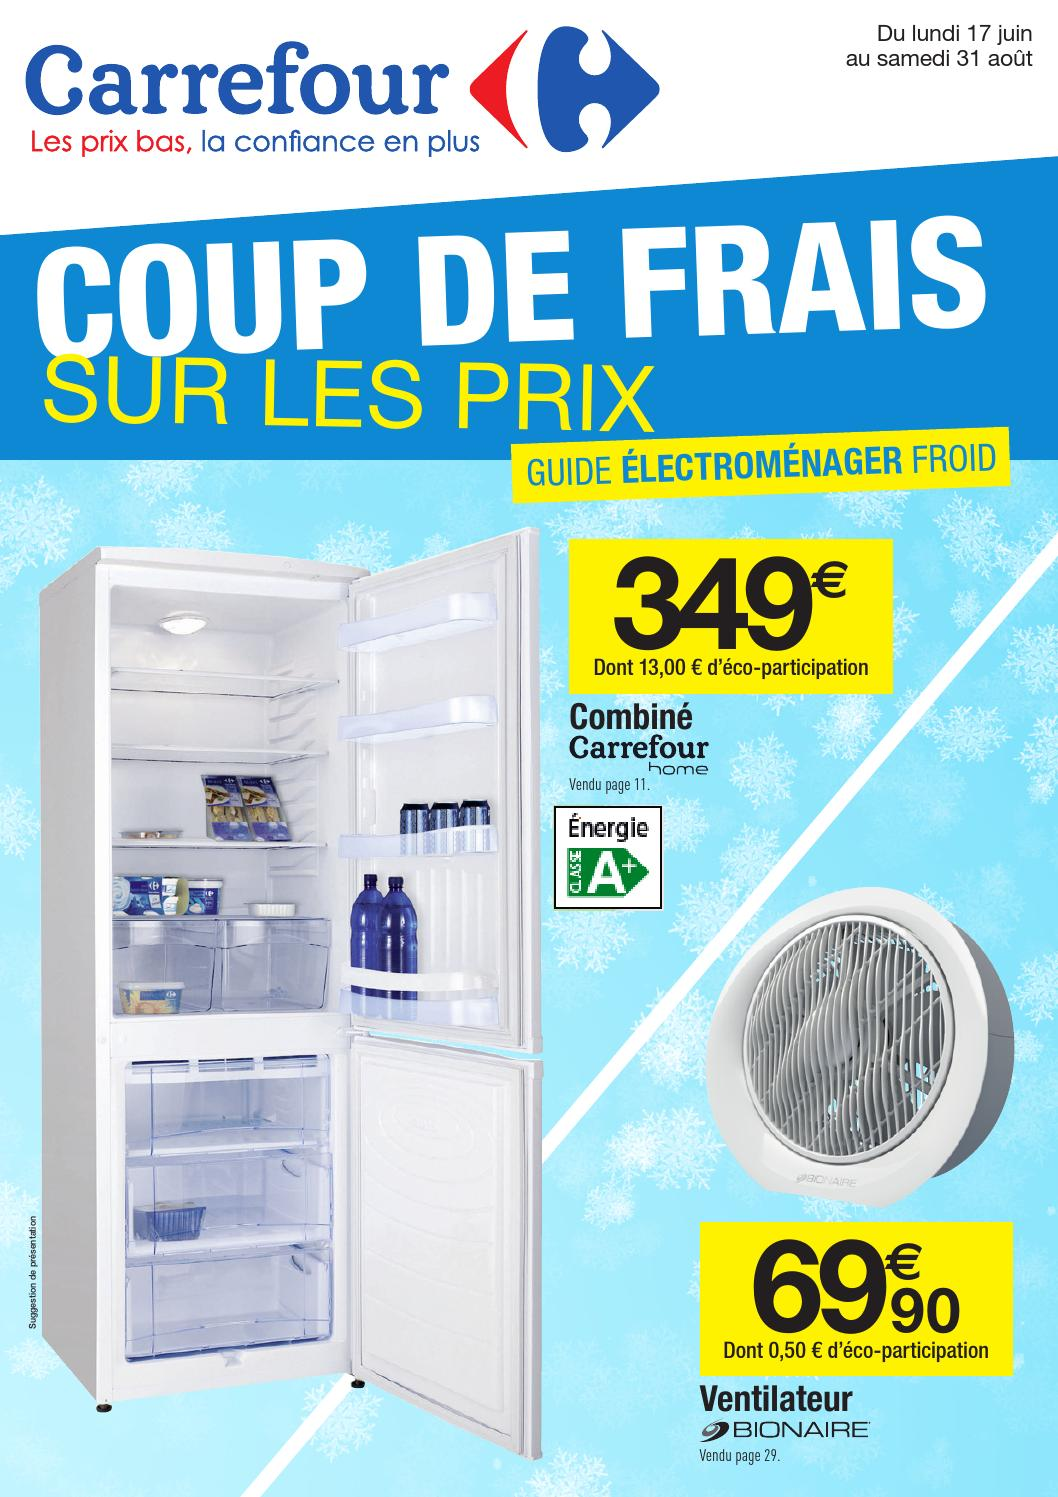 Ventilateur Colonne Carrefour Catalogue Carrefour Coup De Frais By Infopro Digital Issuu